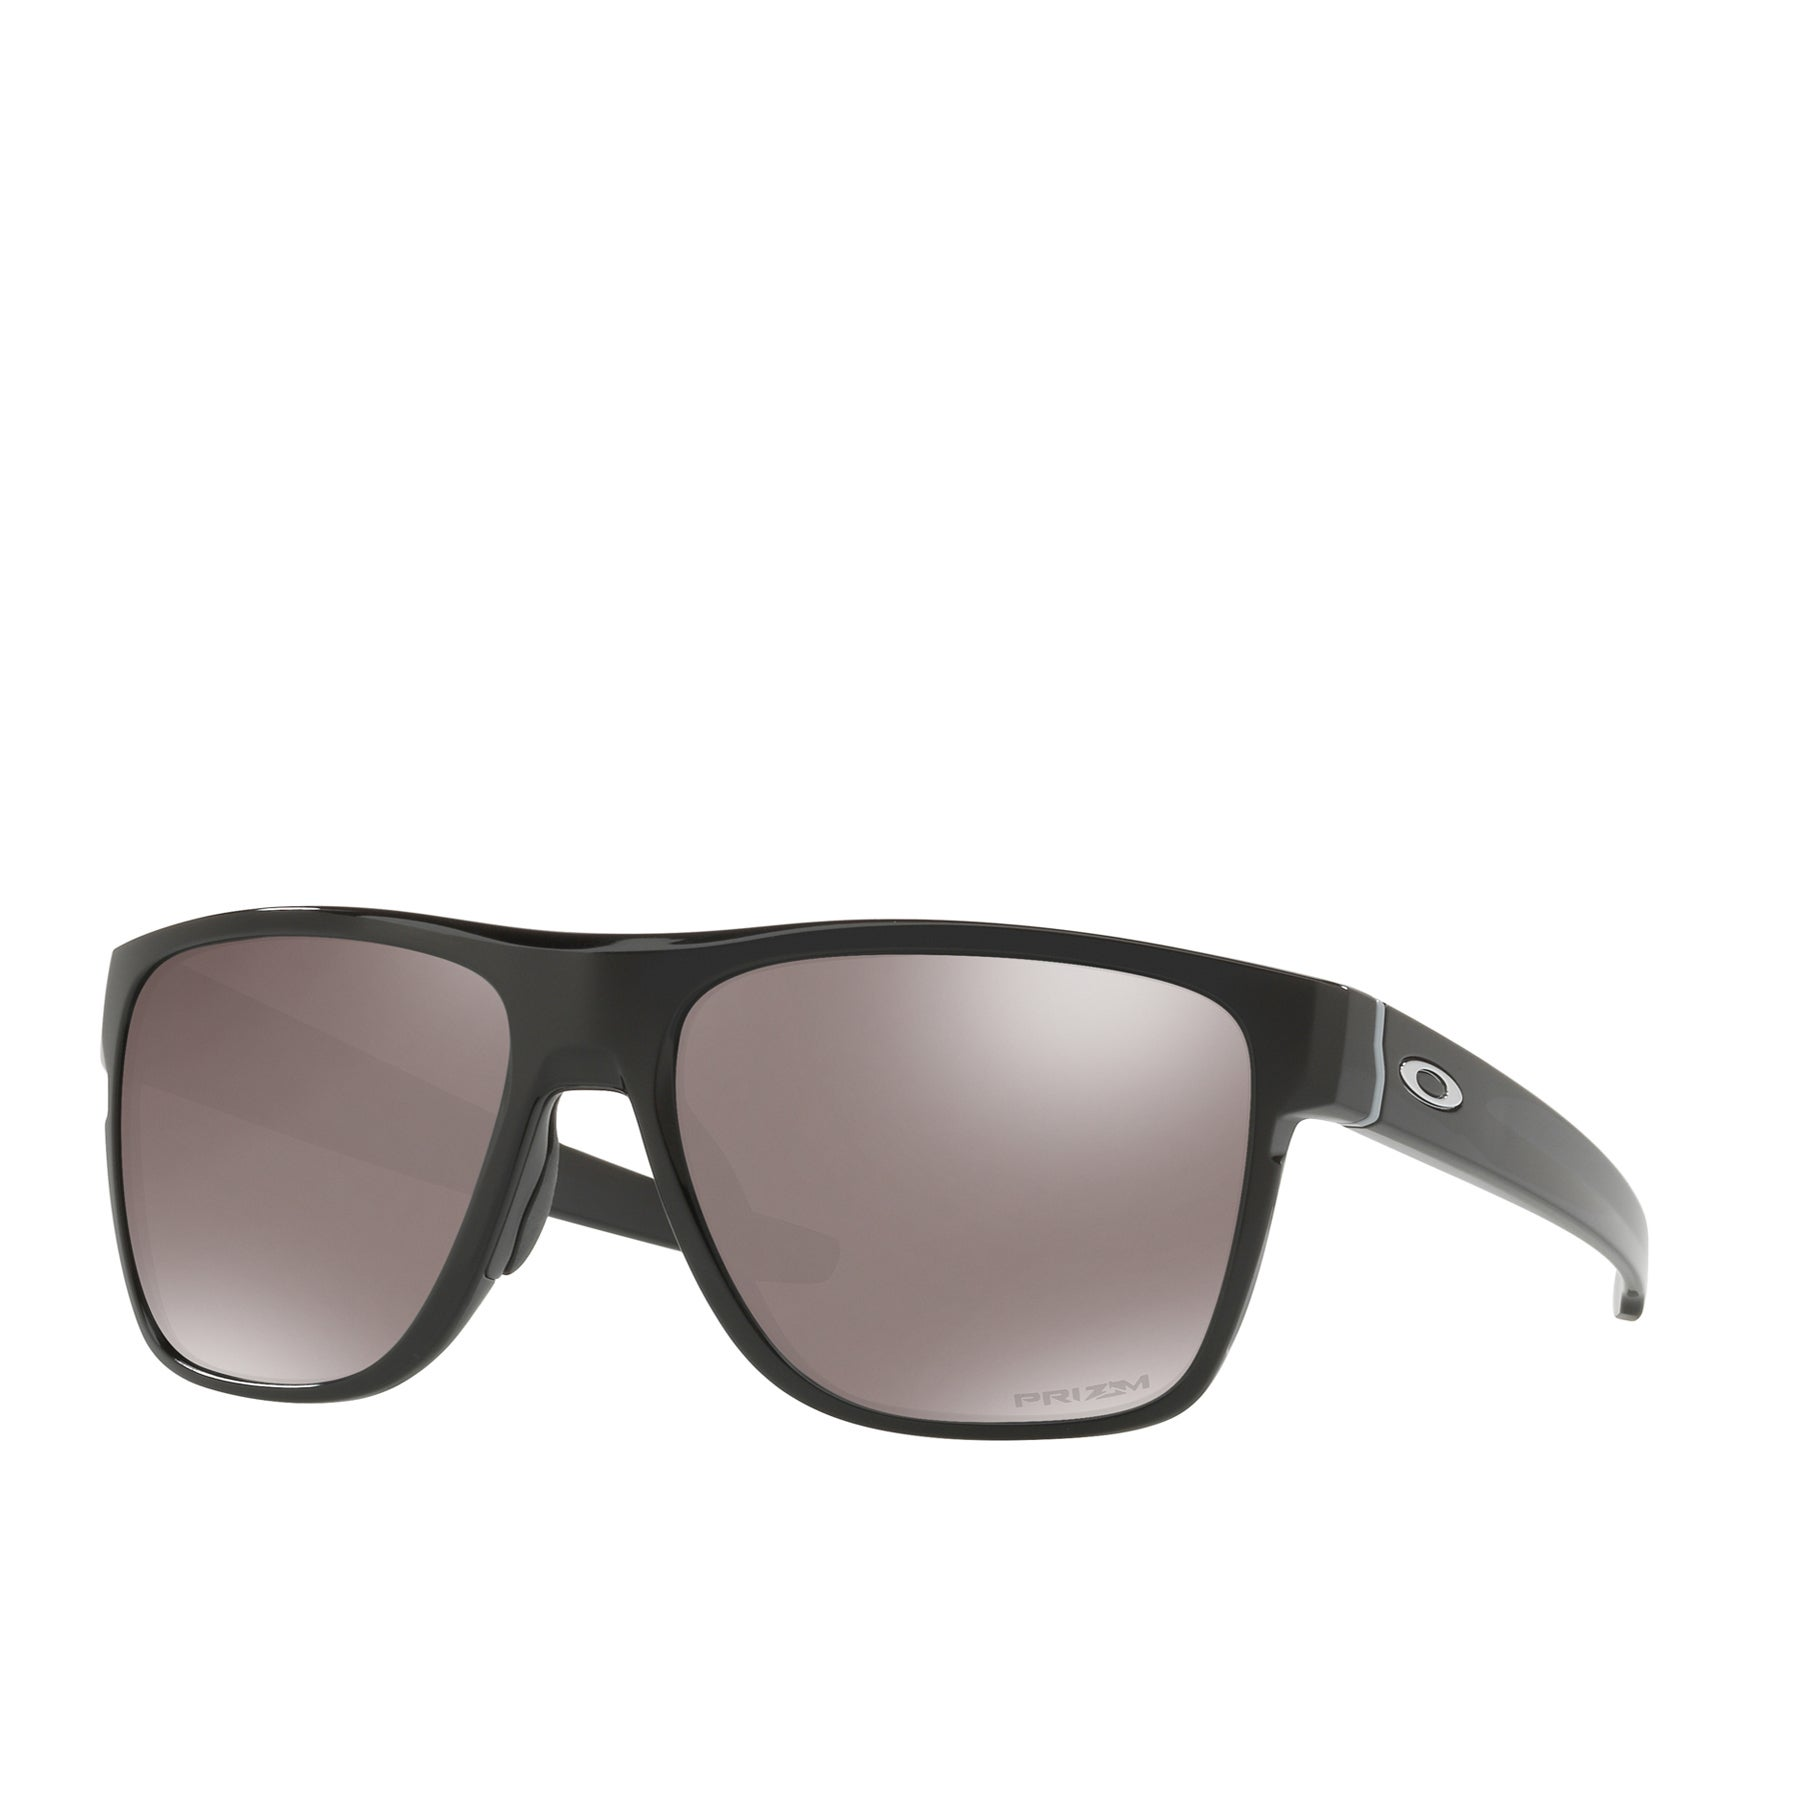 f40844bf61 Gafas Oakley Xl Disponible Surfdome De Crossrange Sol UzMpSV